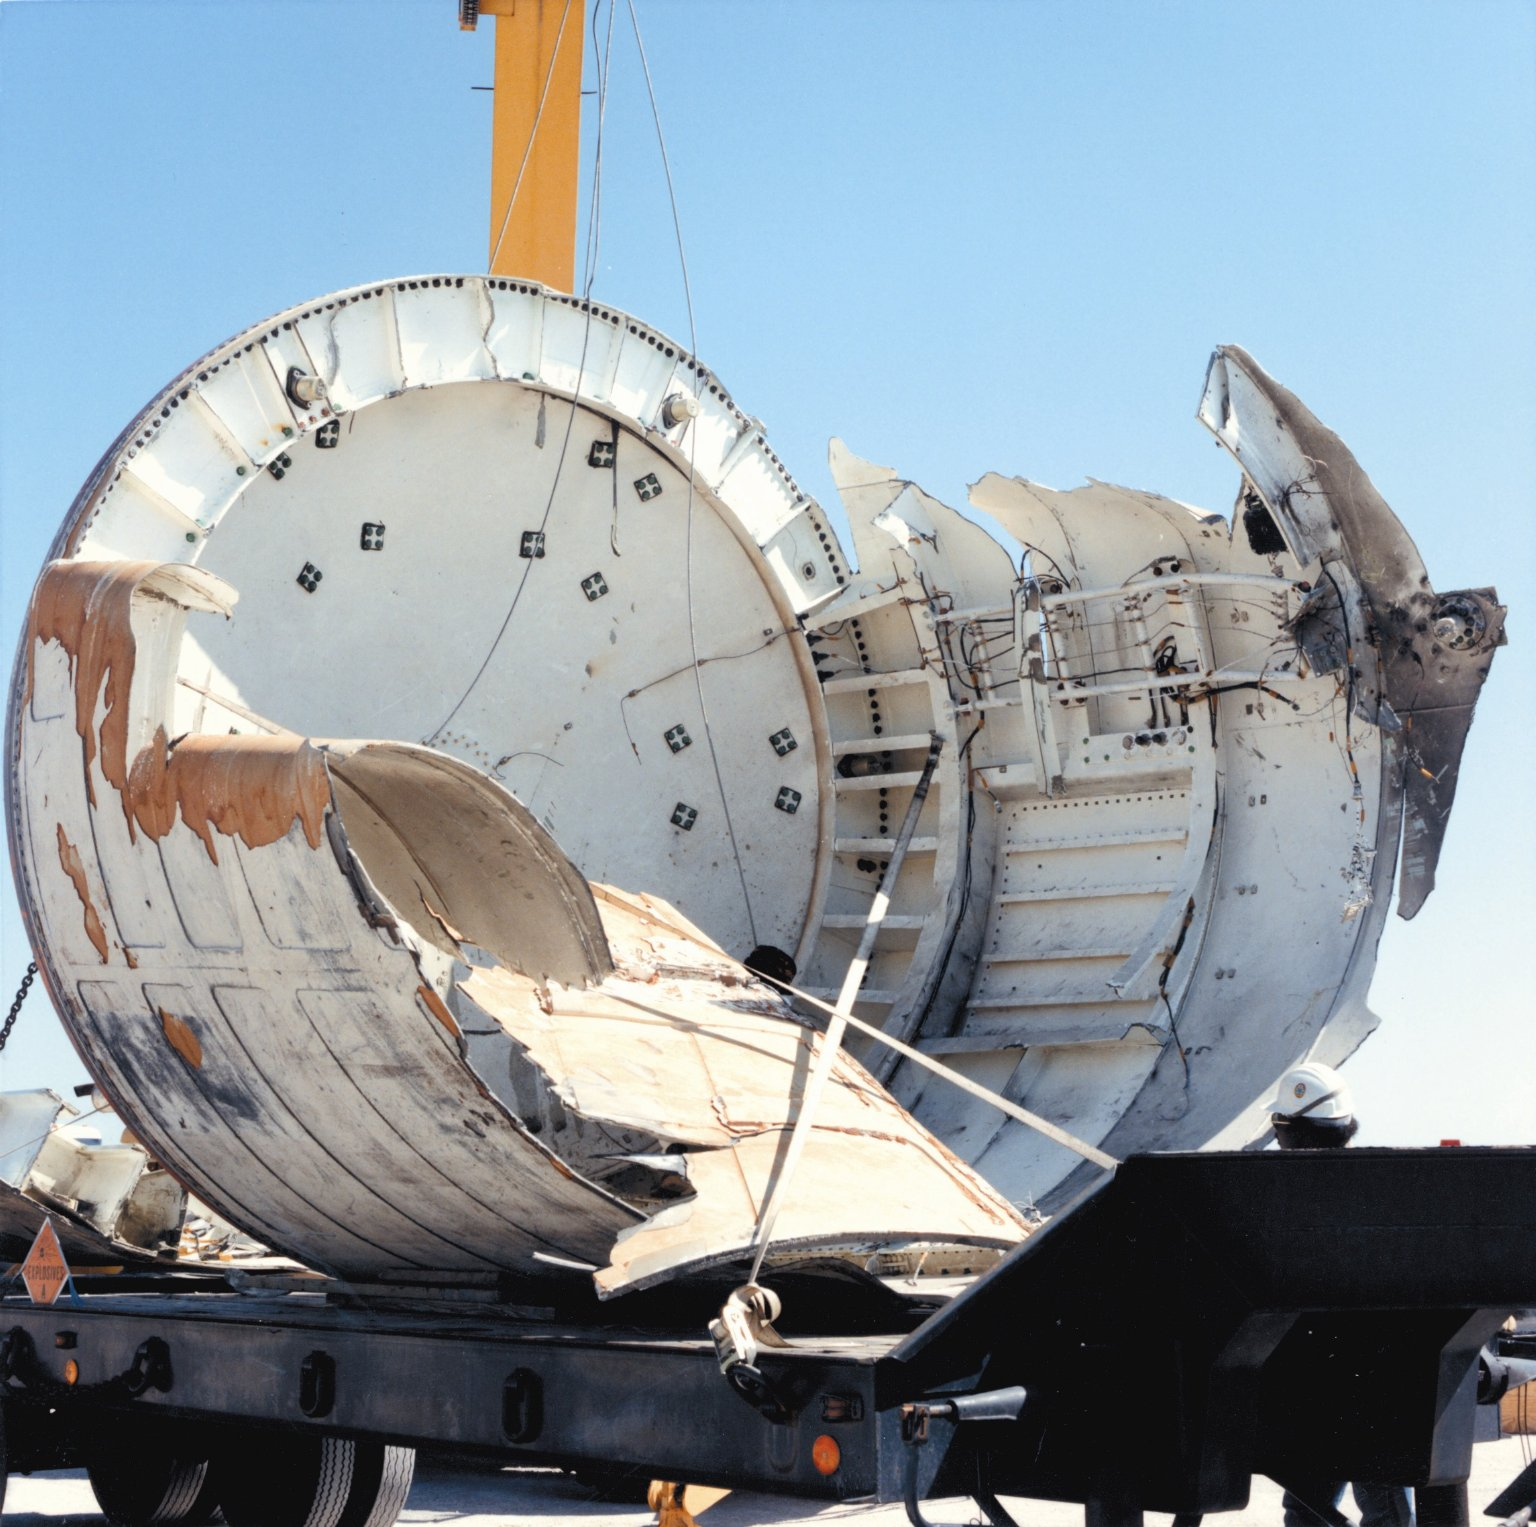 space shuttle challenger wreckage - photo #4